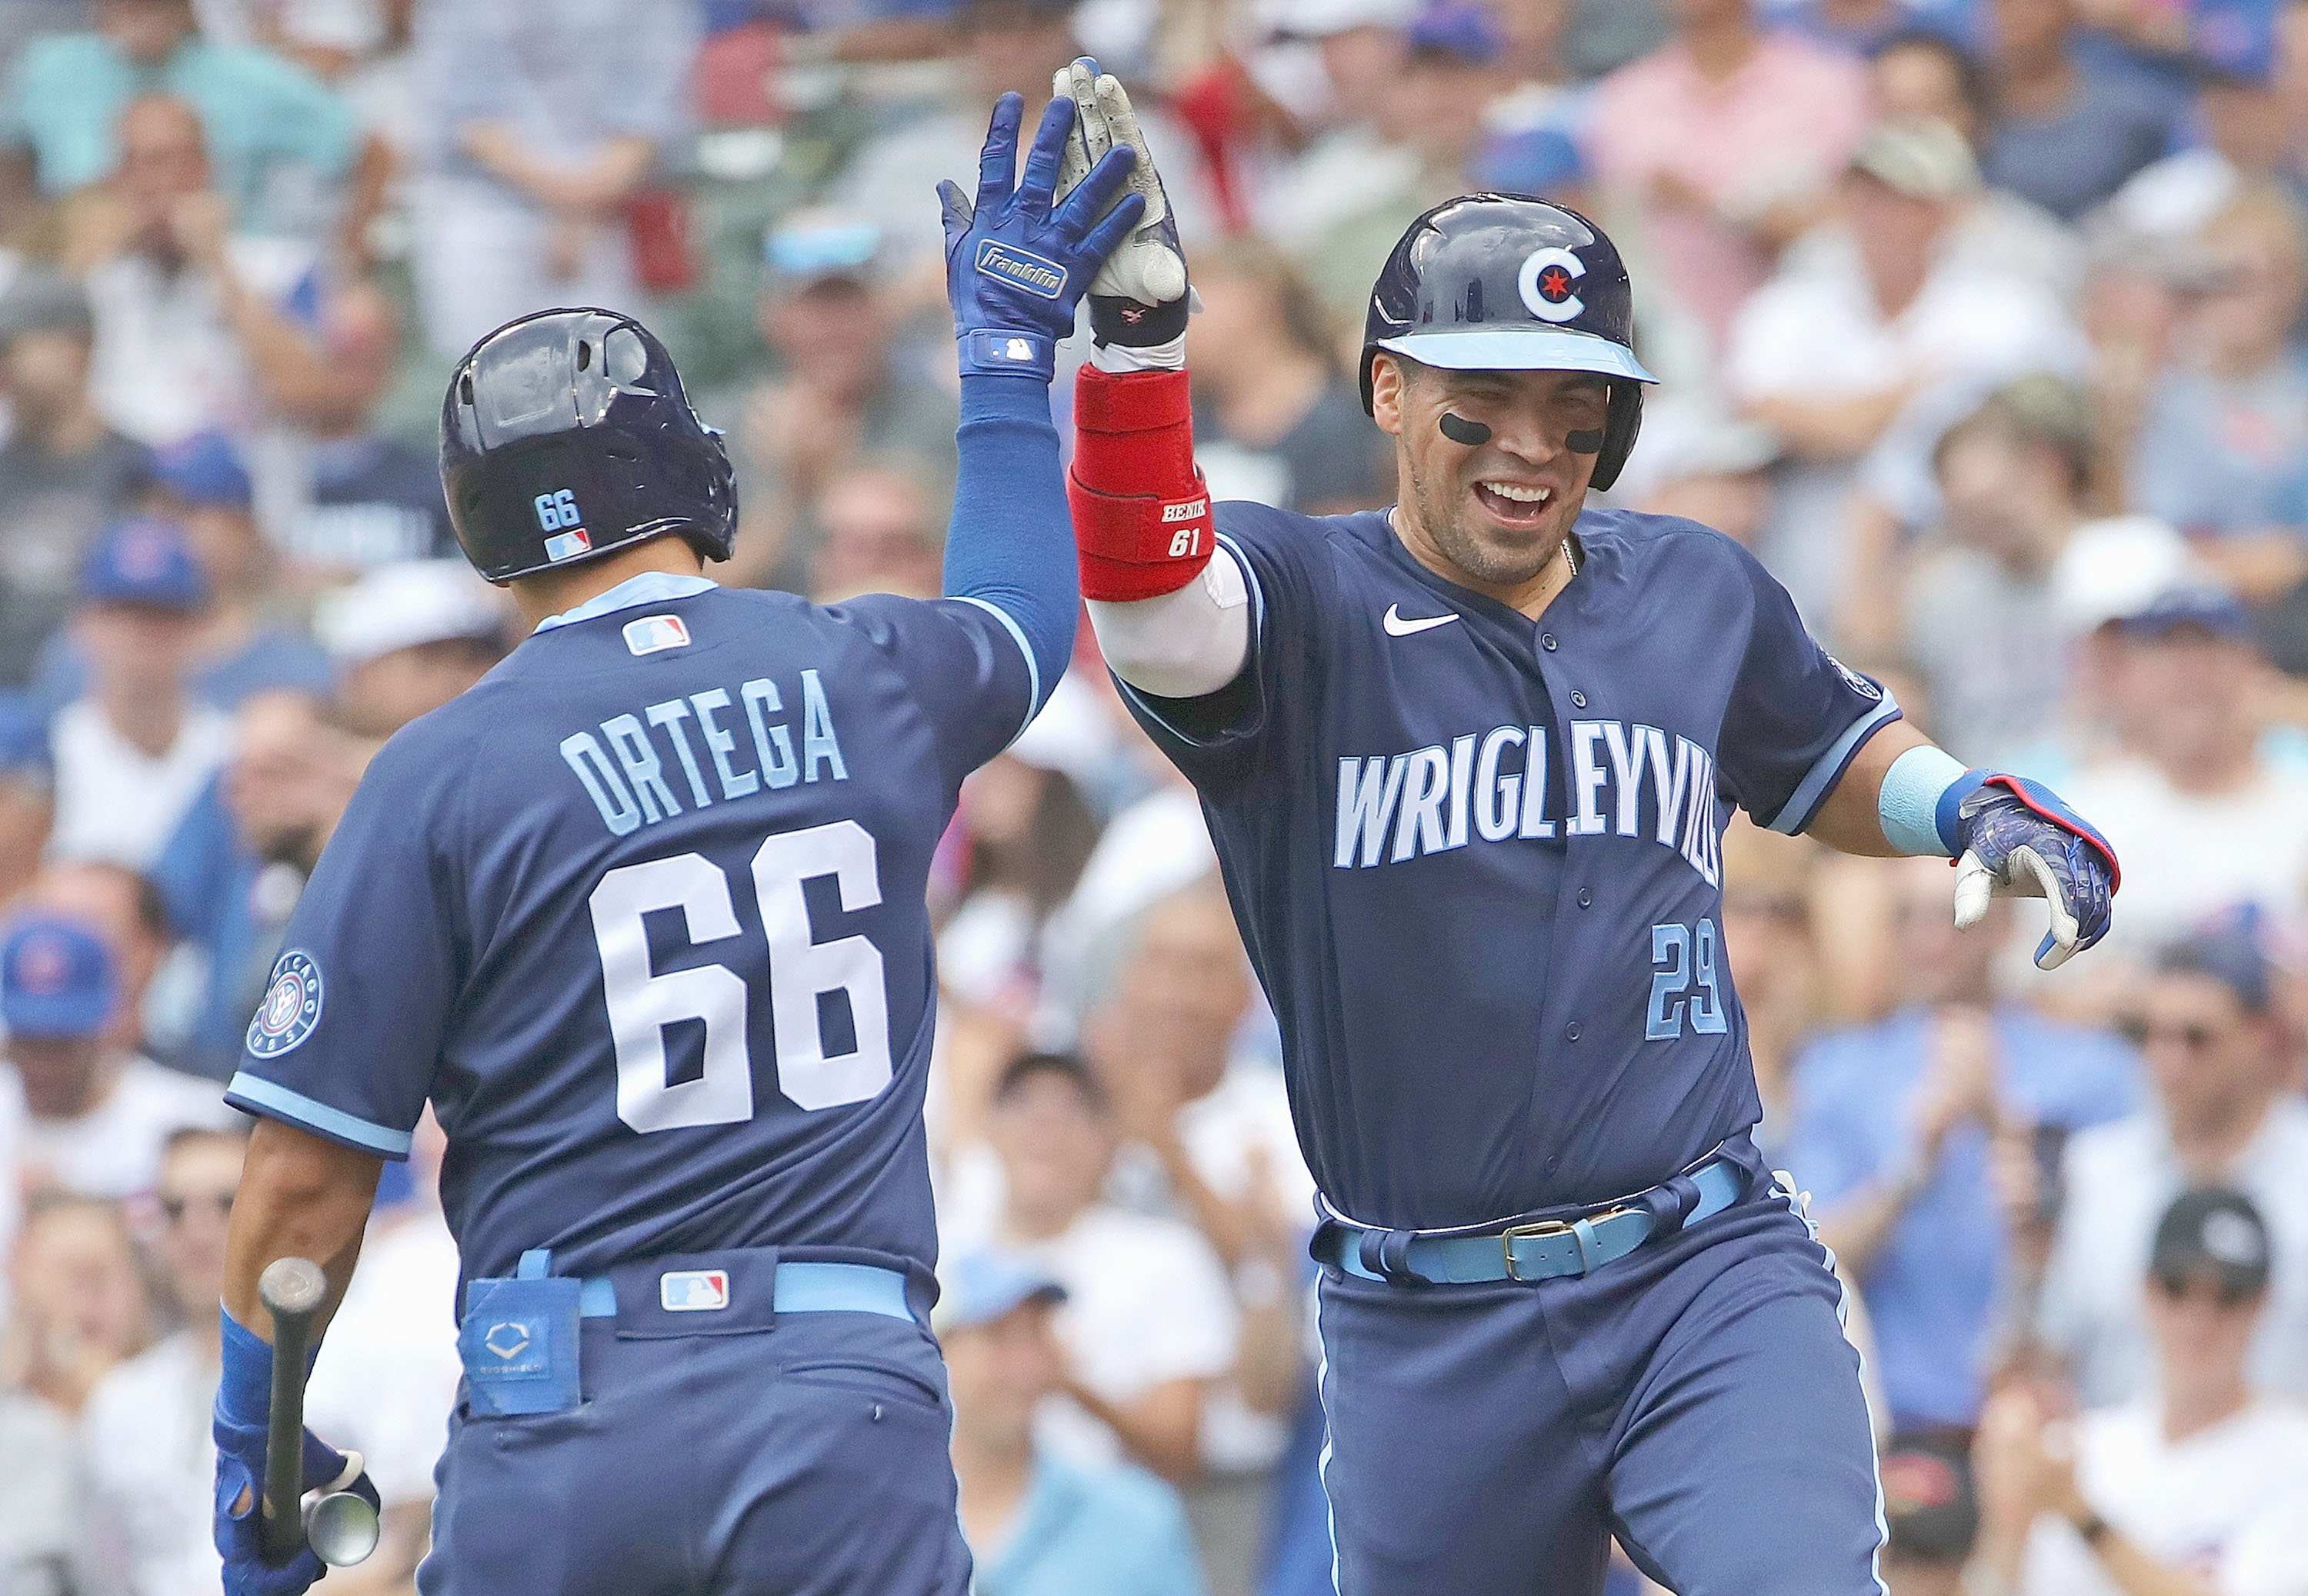 Robinson Chirinos (right) celebrates after hitting a solo home run with teammate Rafael Ortega during the fourth inning Friday against the Diamondbacks at Wrigley Field.